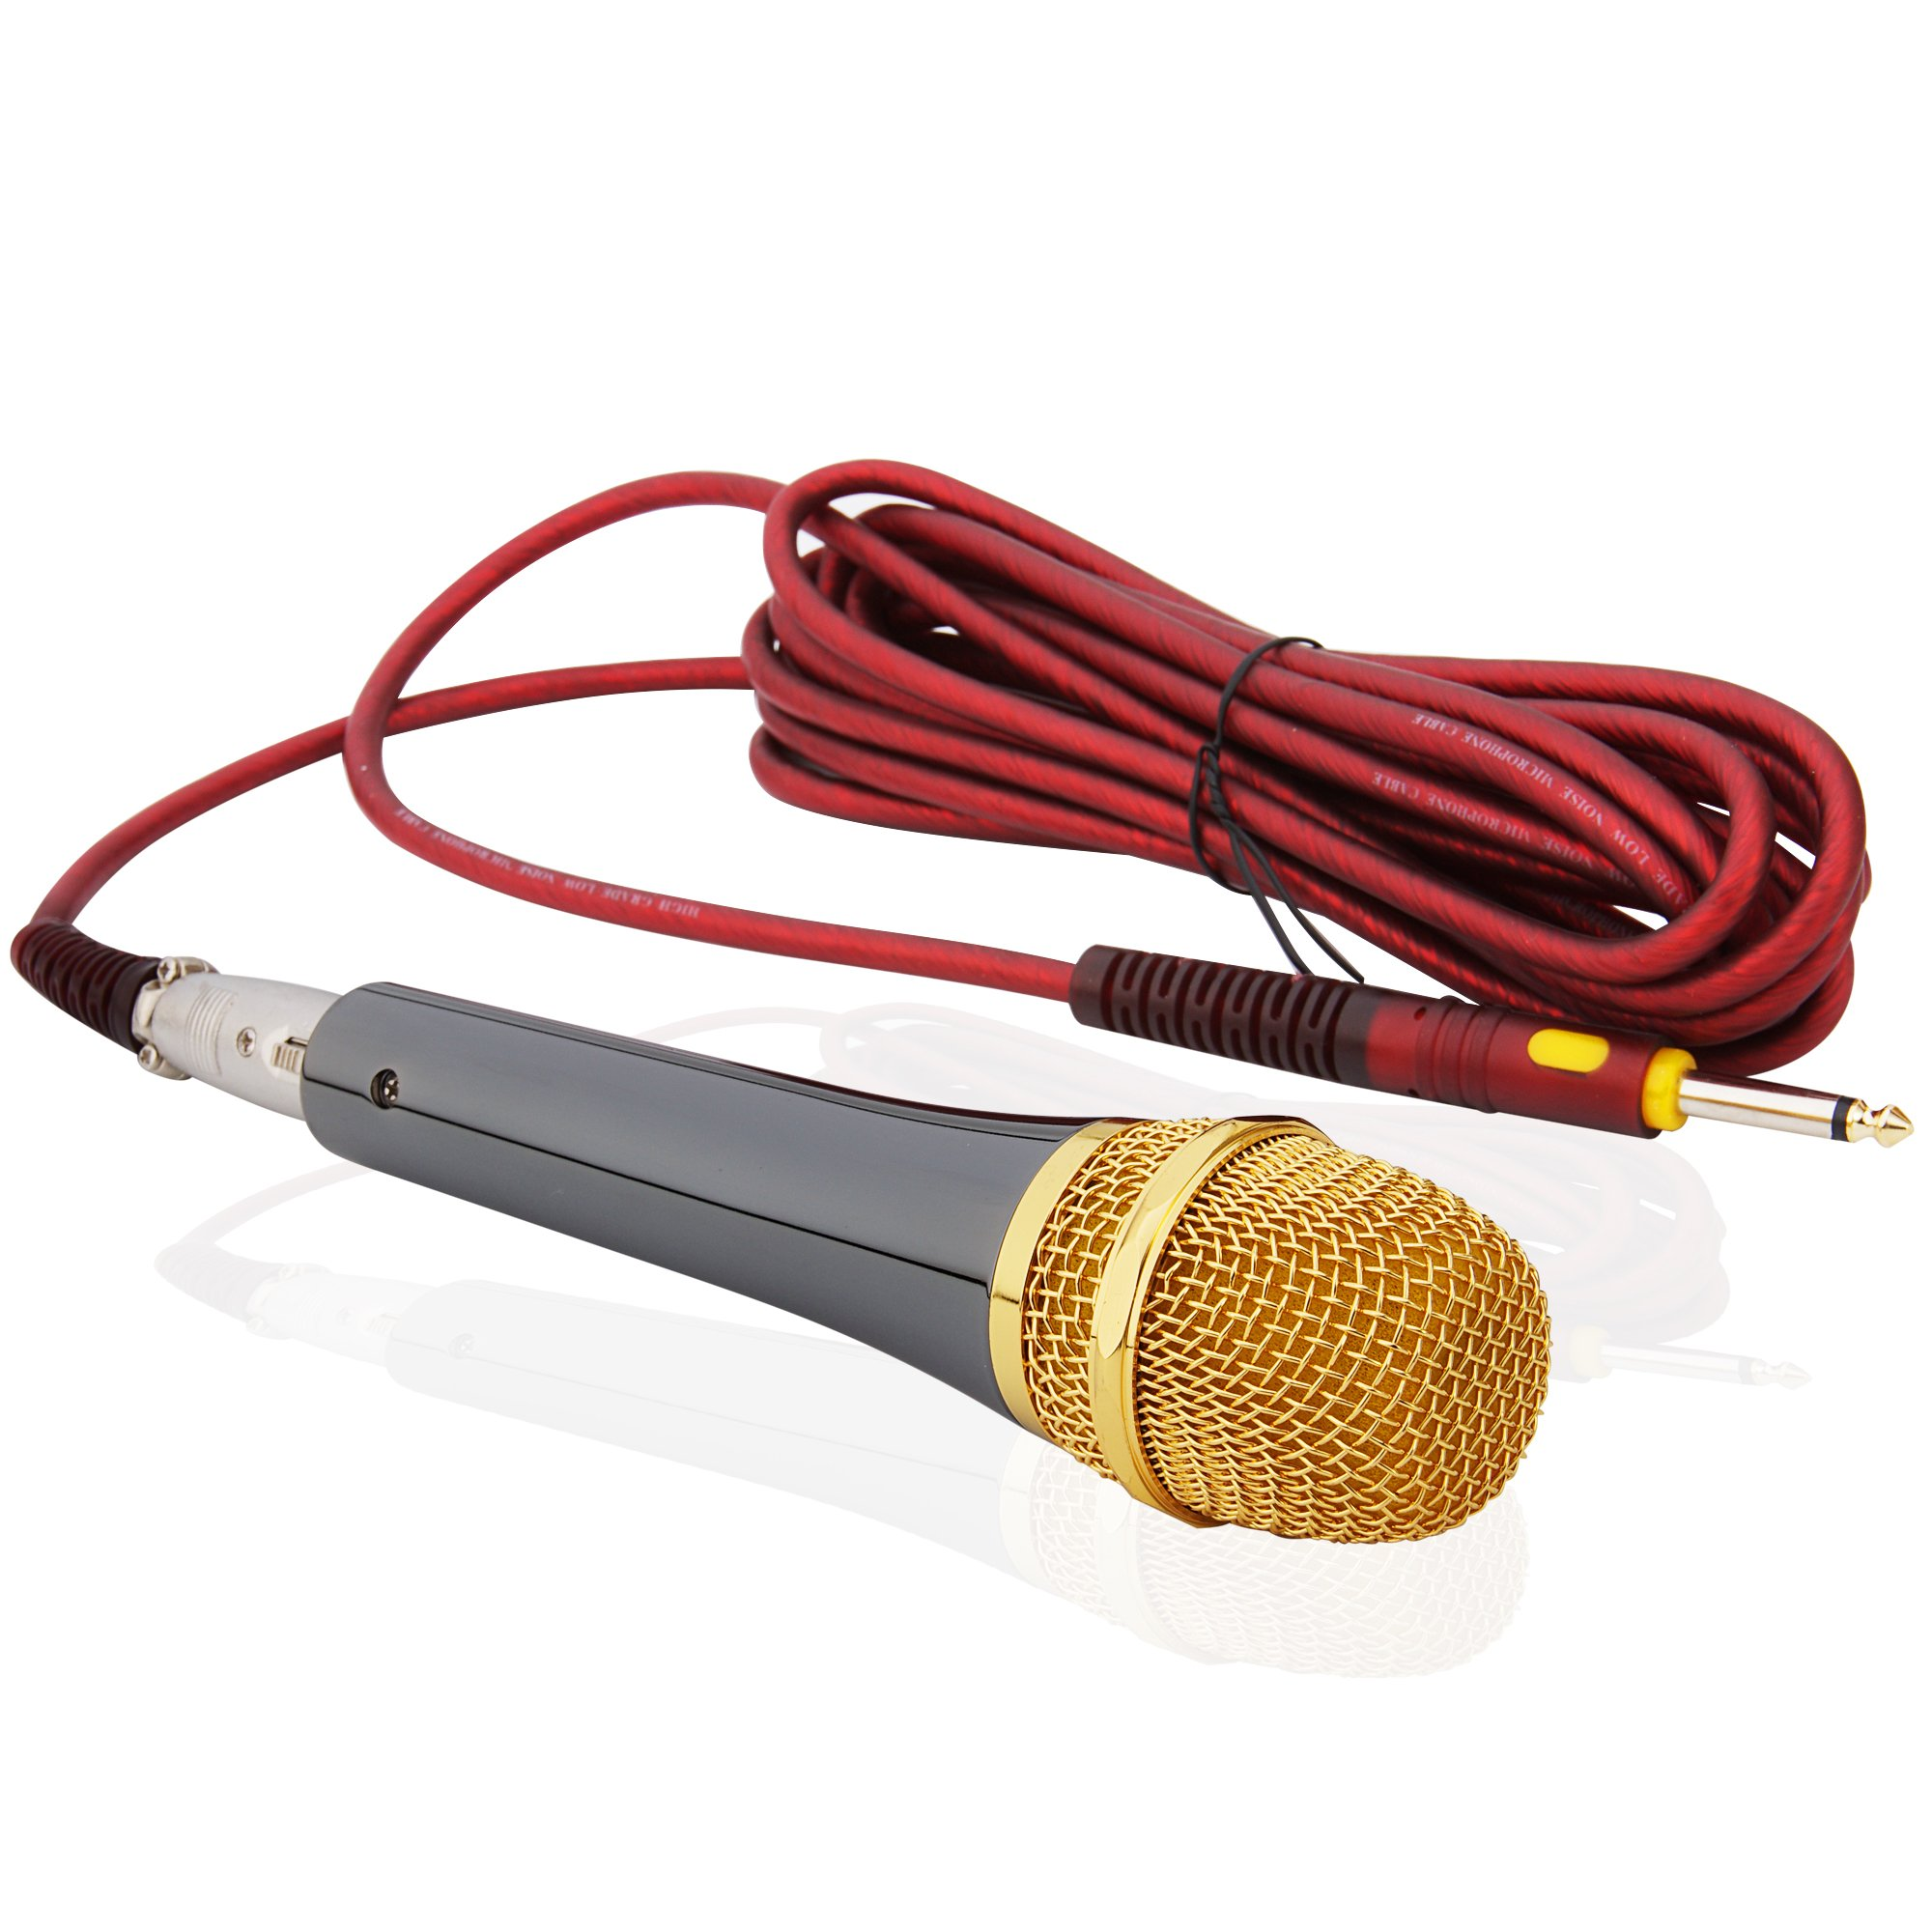 Anykey ANK-78 Cardioid Dynamic Vocal Microphone with 19.7 Ft Xlr-to-1/4'' Cable